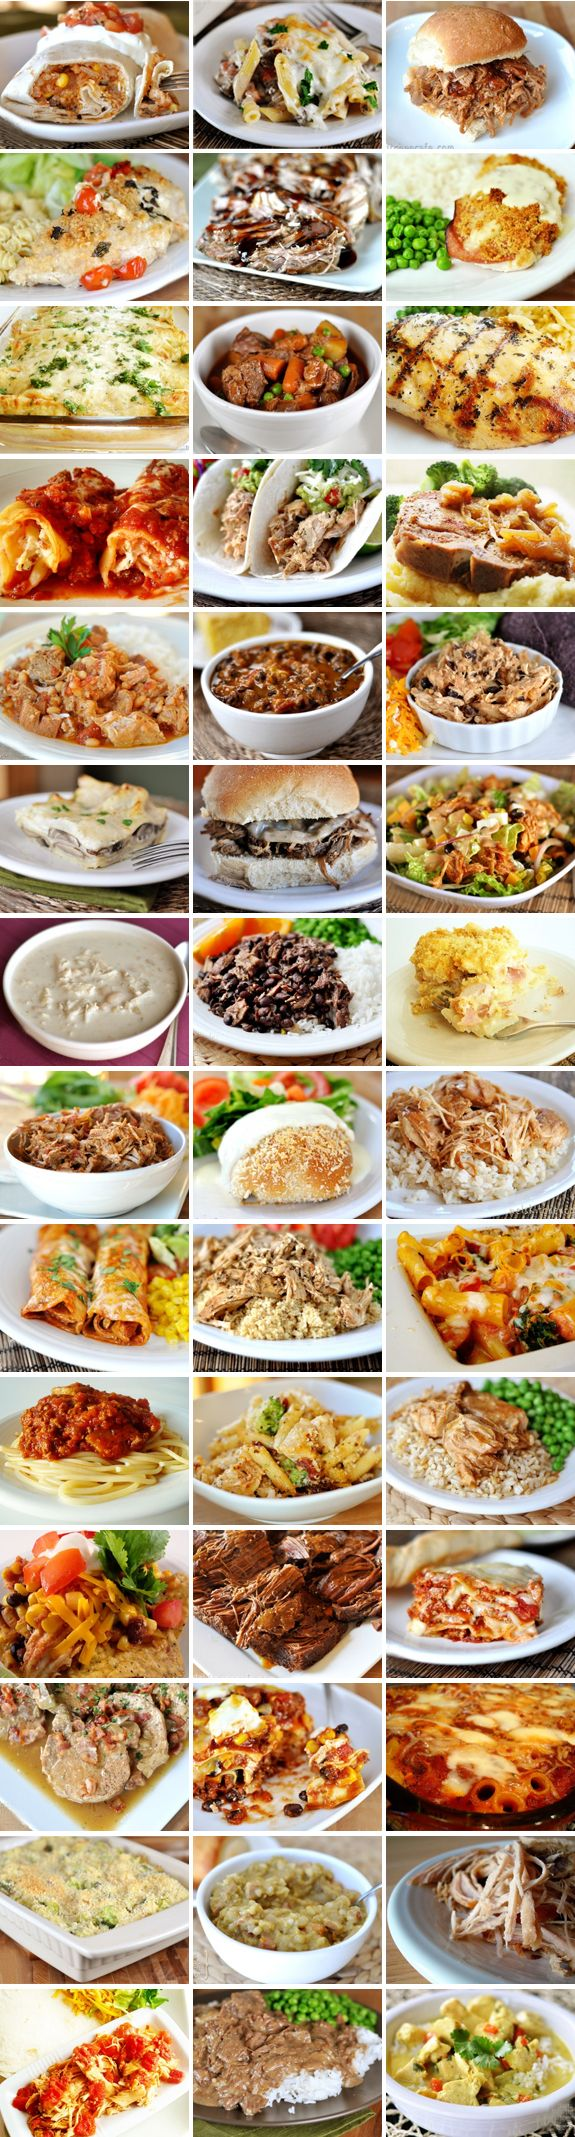 40  make ahead meals @ Mels Kitchen Cafe--- All of these meals can be made ahead in some form or another  some are slow cooker meals, some are meals I have successfully frozen and baked later, some can be assembled the night before or morning of and refrigerated until ready to bake.